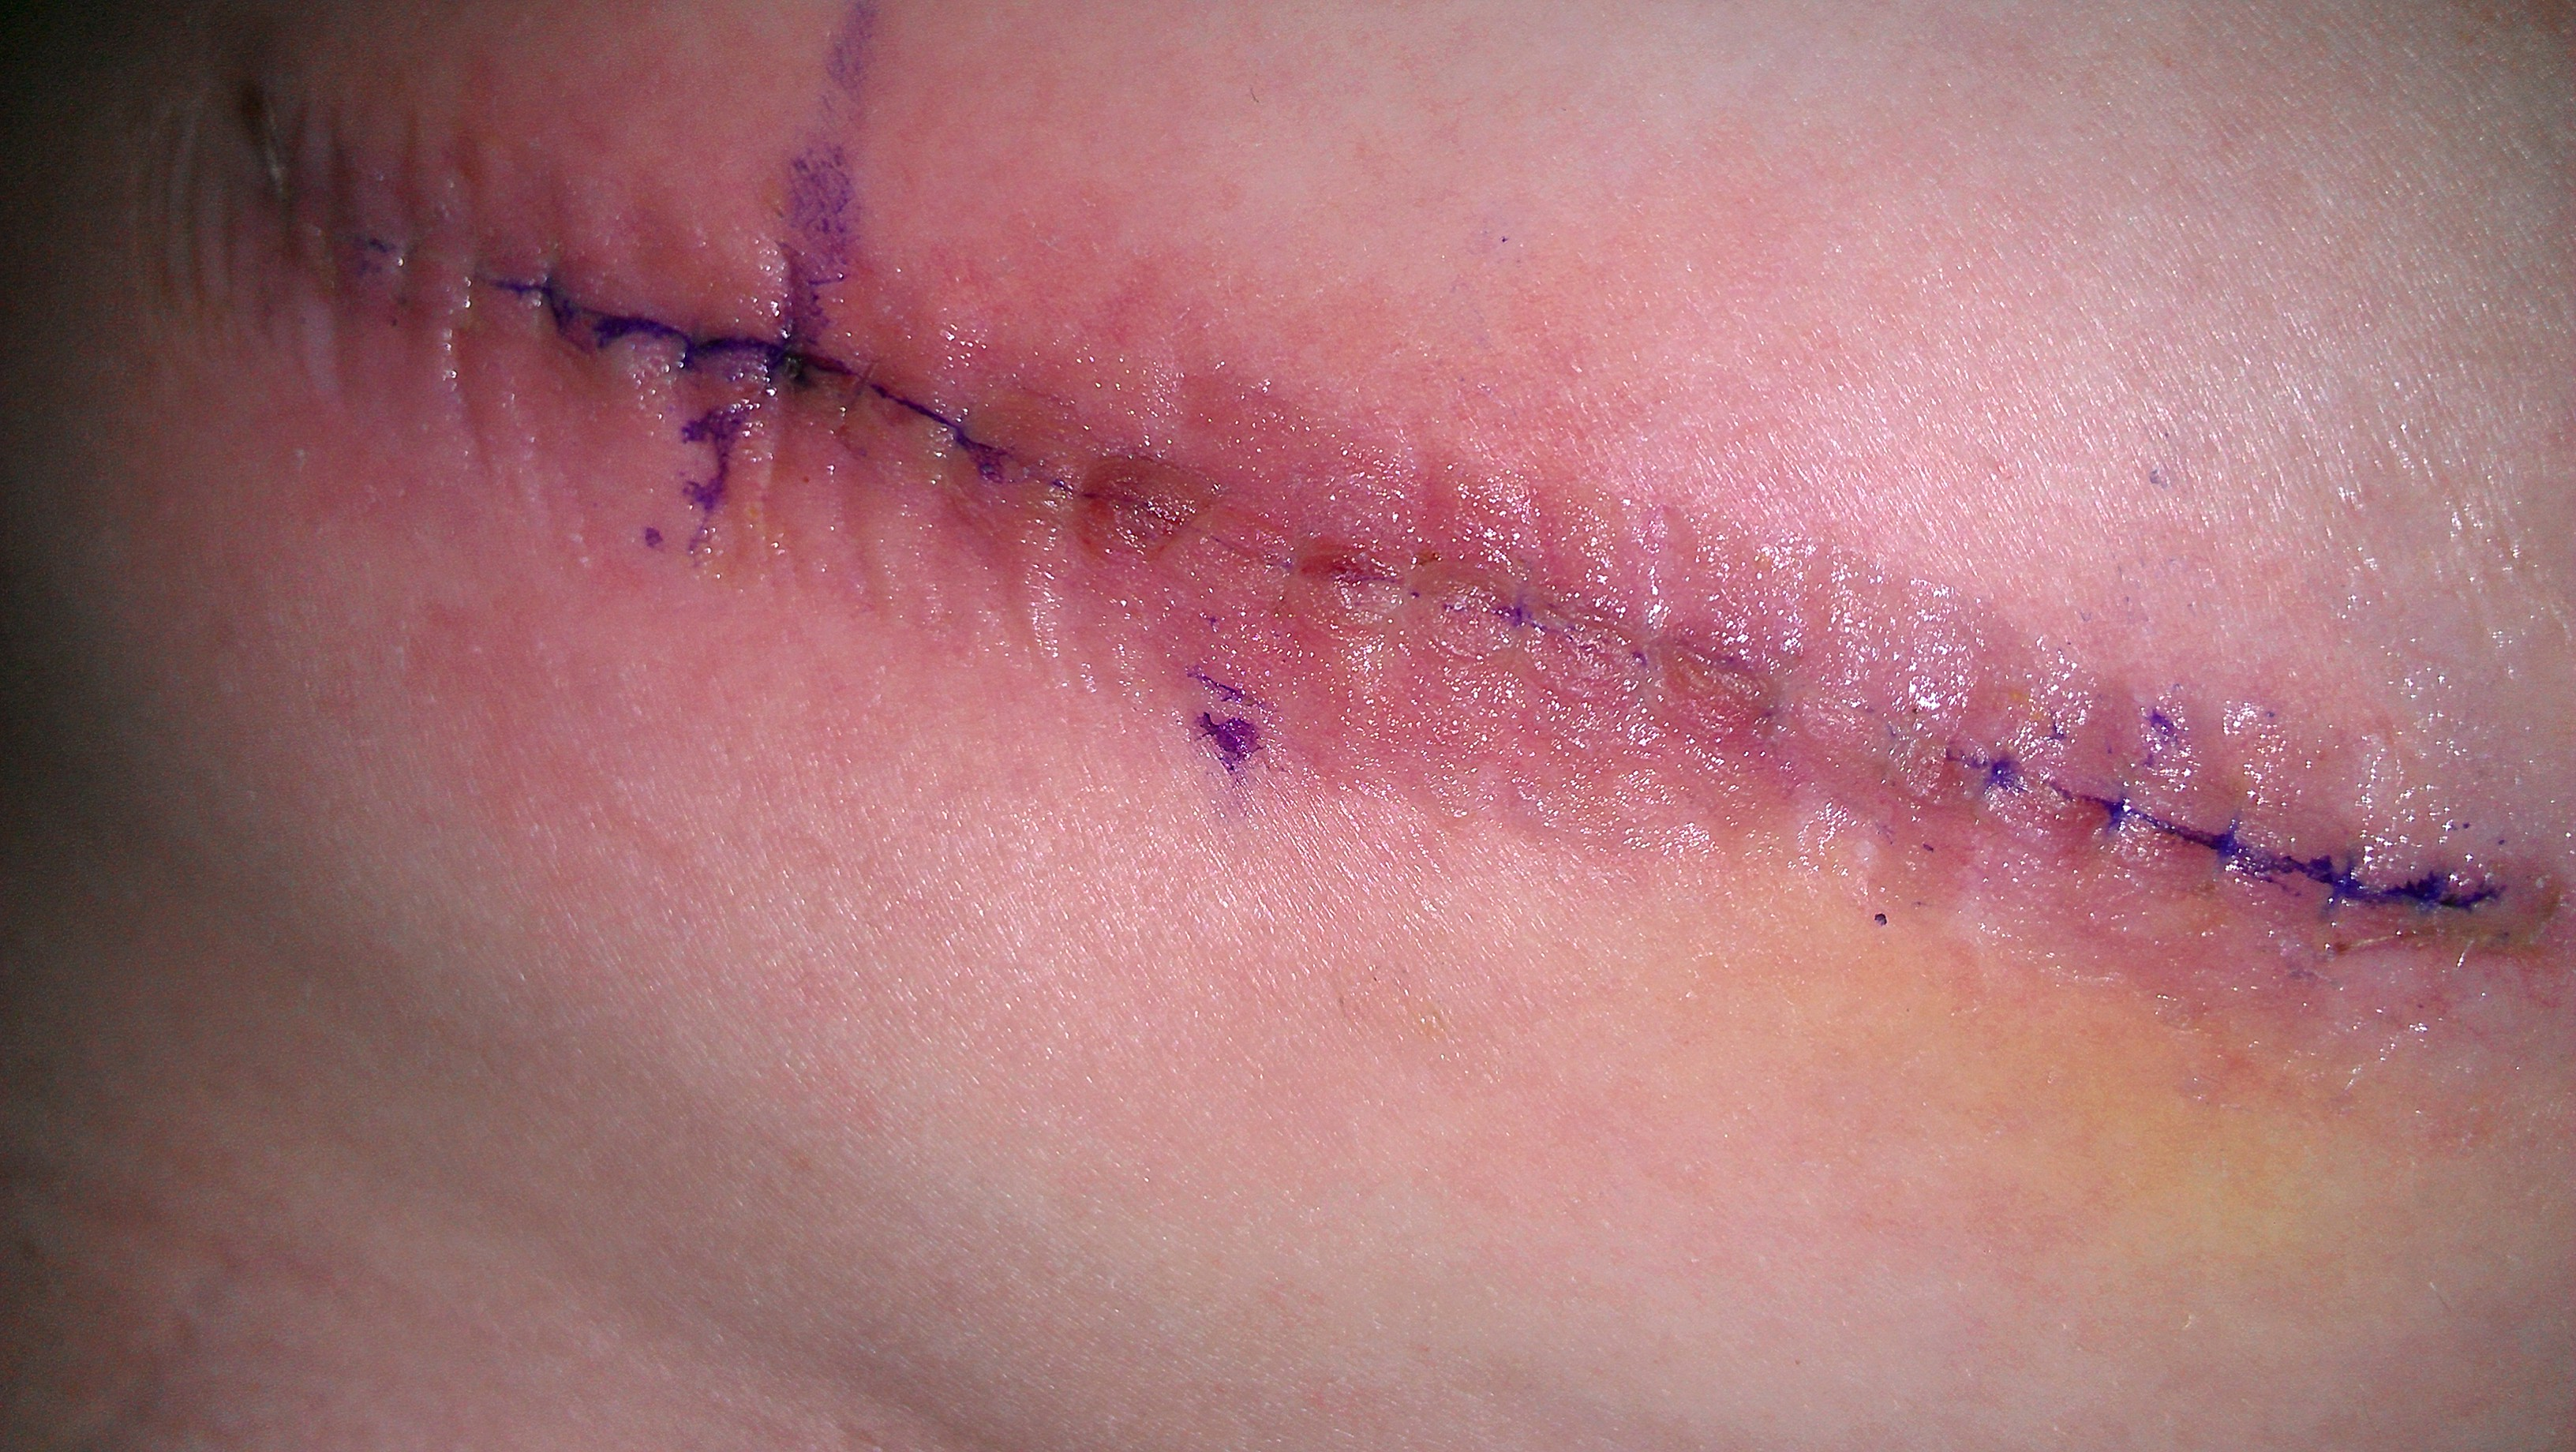 LP Shunt surgical scar.